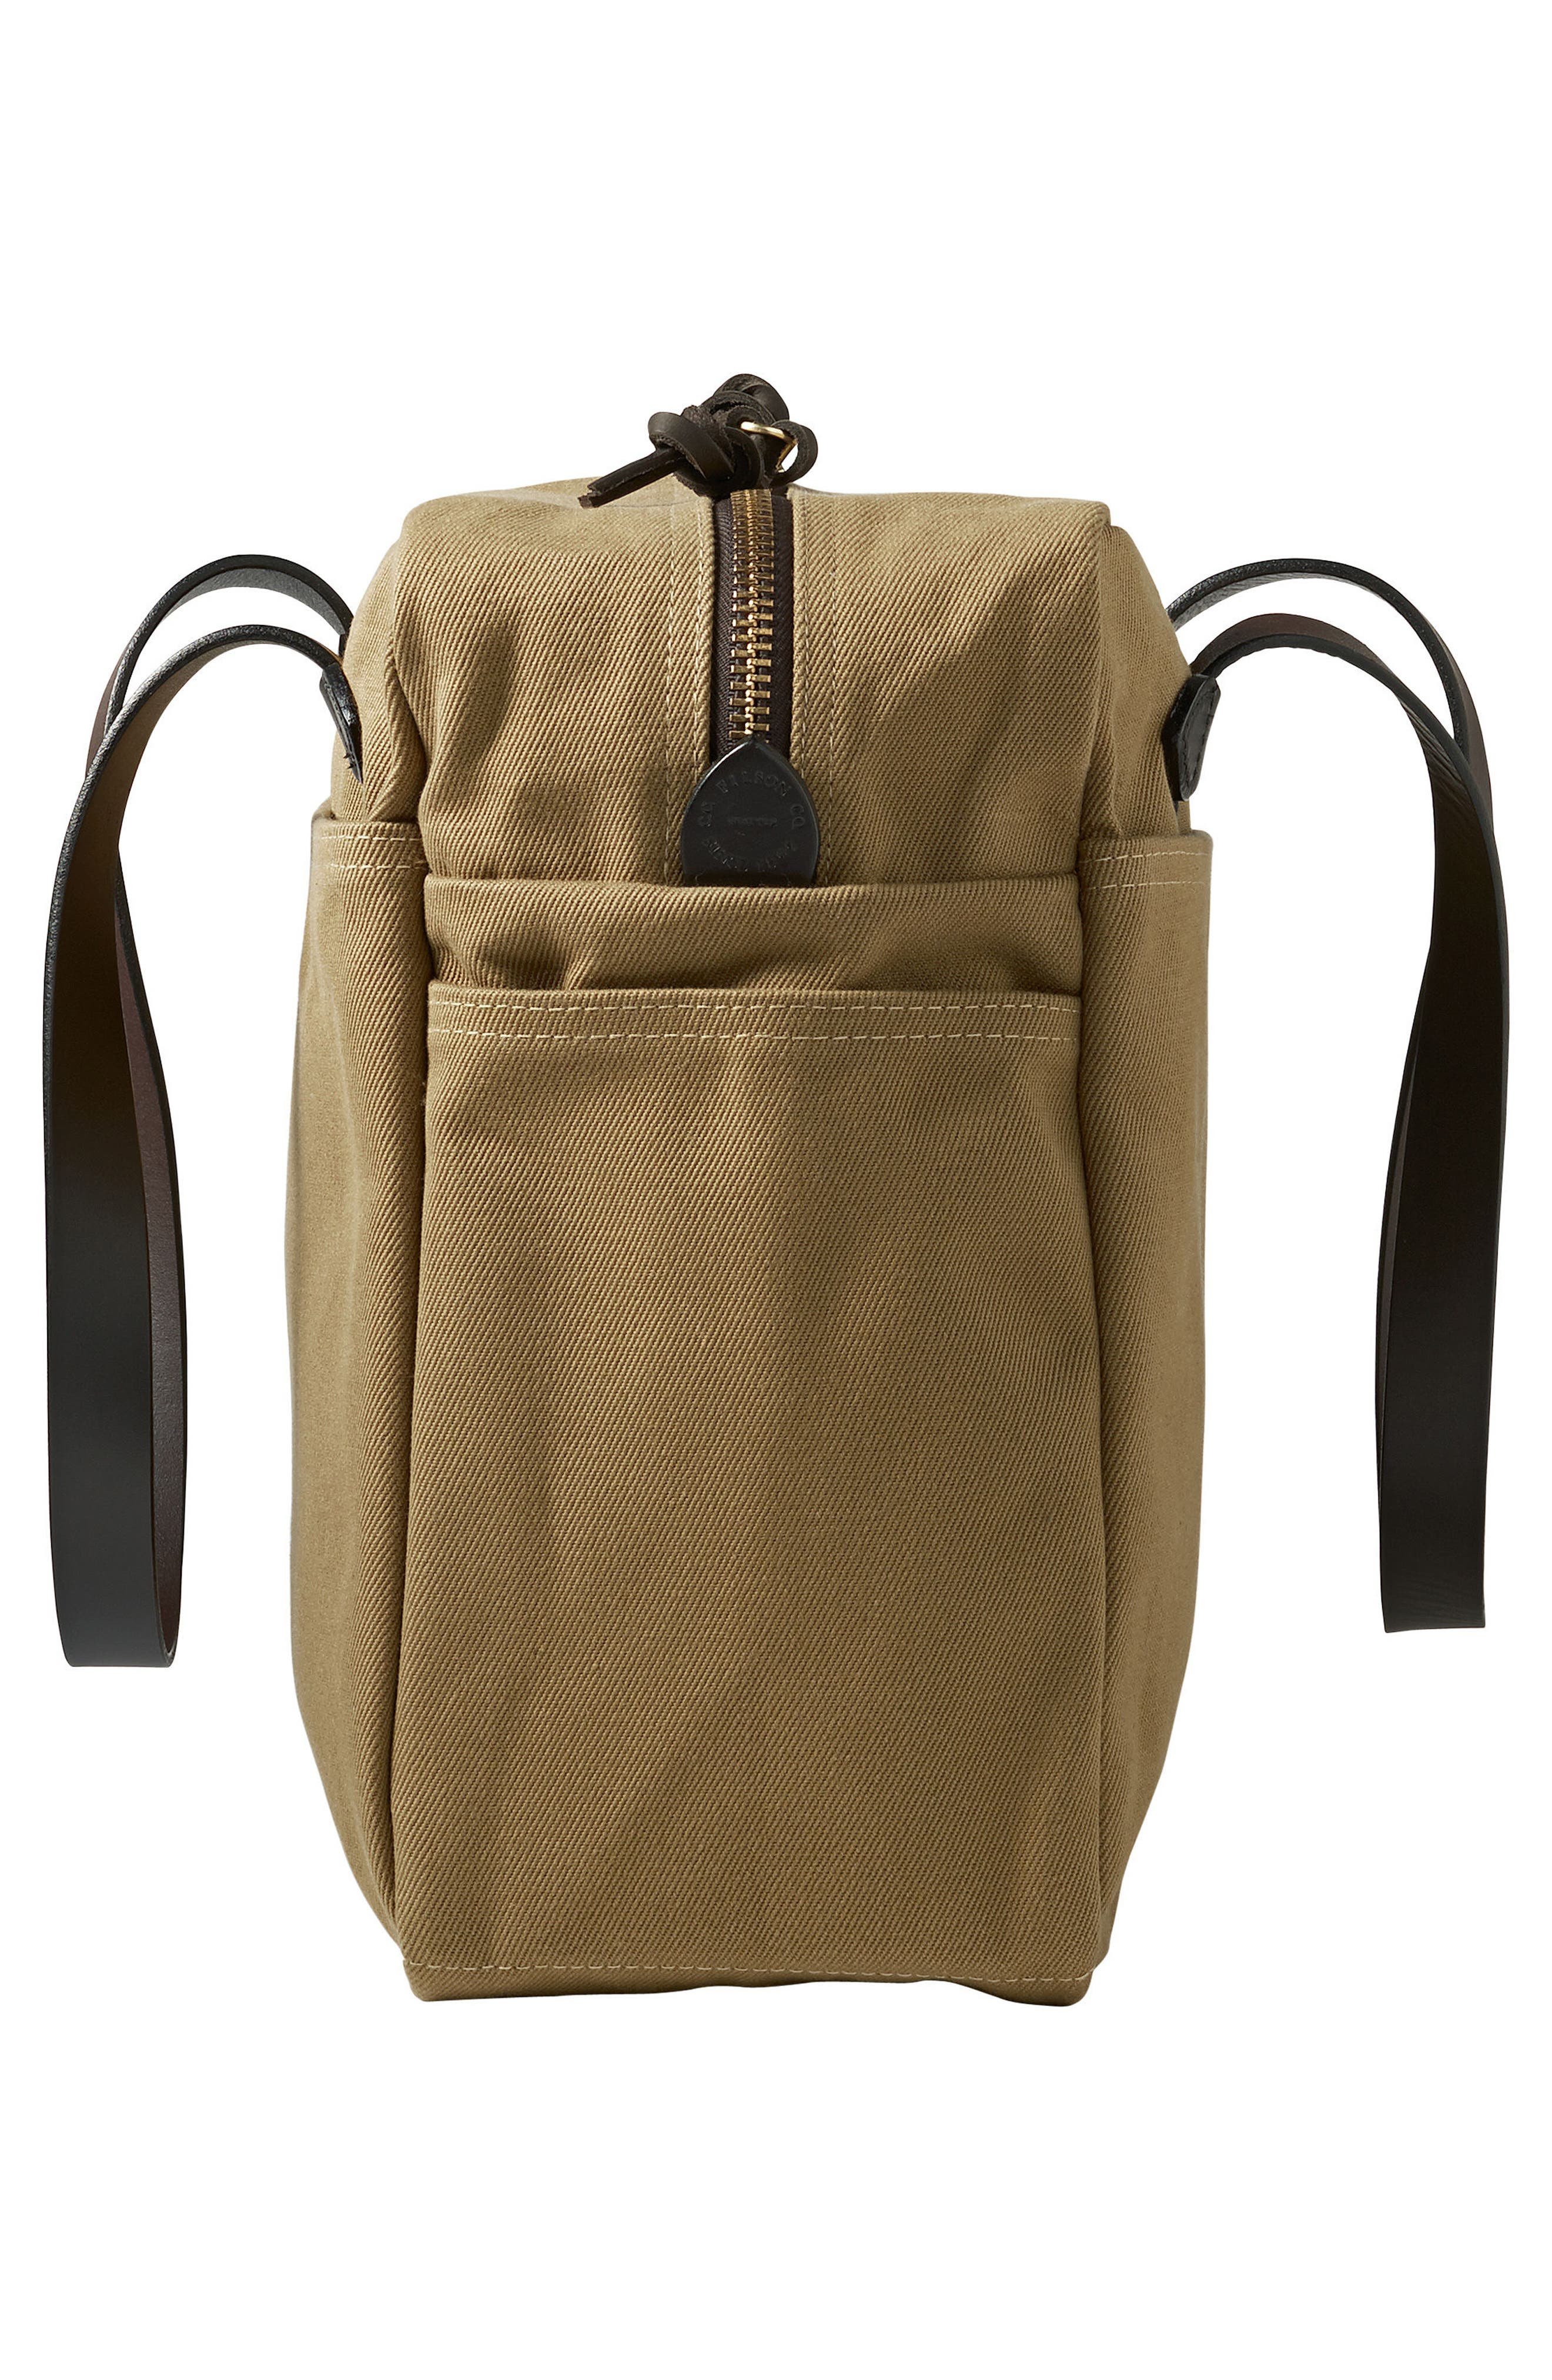 Rugged Twill Zip Tote Bag,                             Alternate thumbnail 4, color,                             Tan